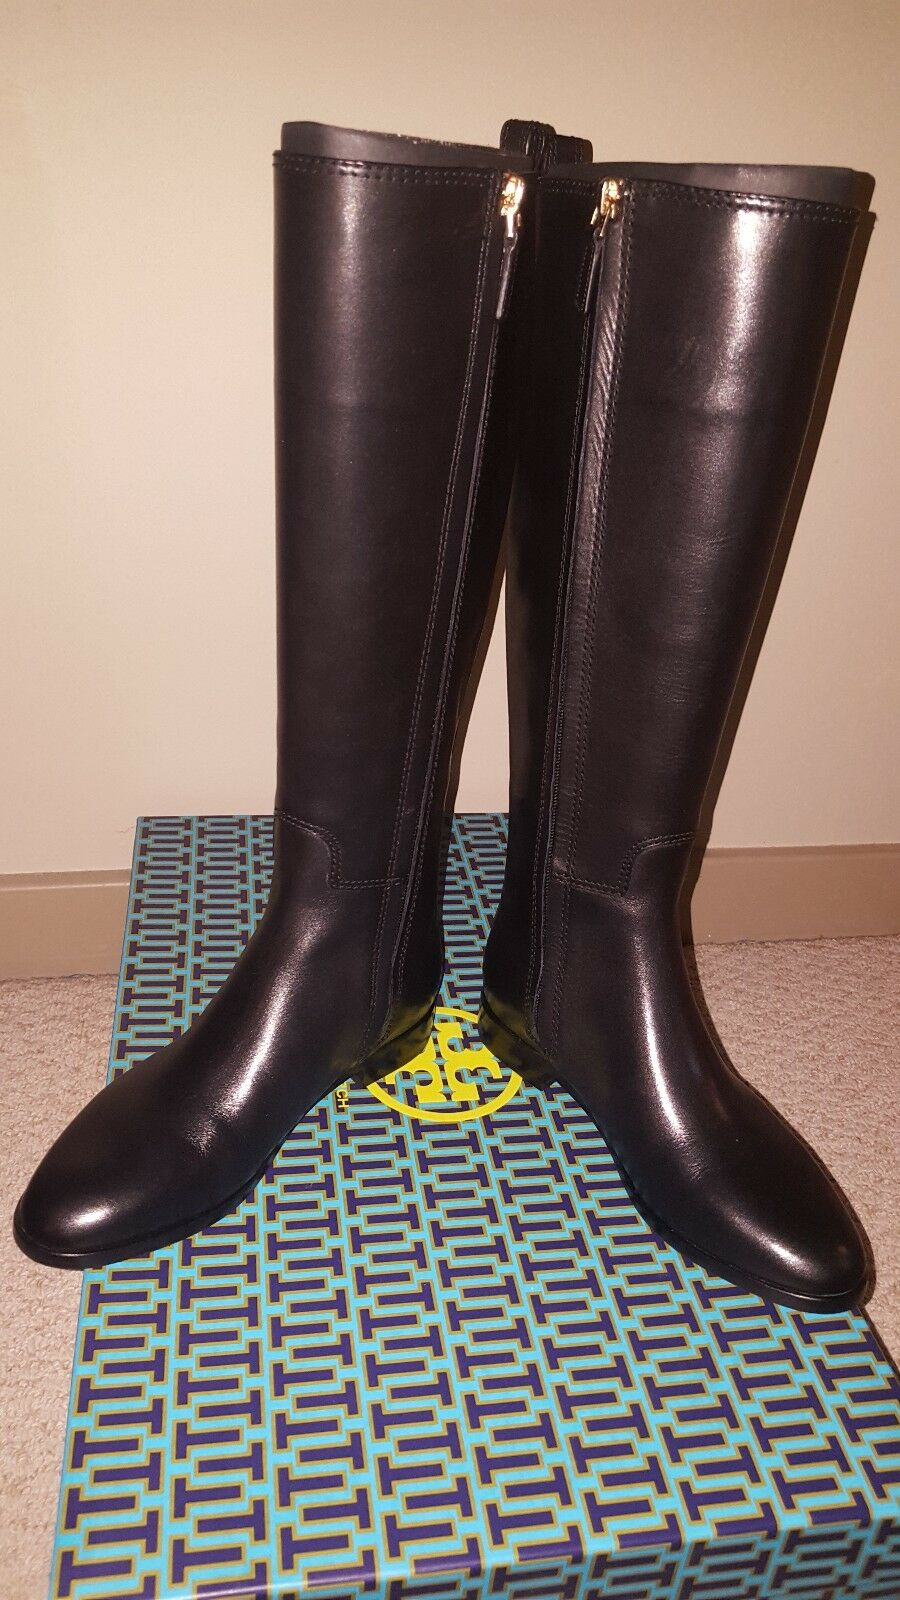 NEW WITH WITH WITH BOX Tory Burch Wyatt Boots in Black Size 6 FREE SHIPPING db36b6